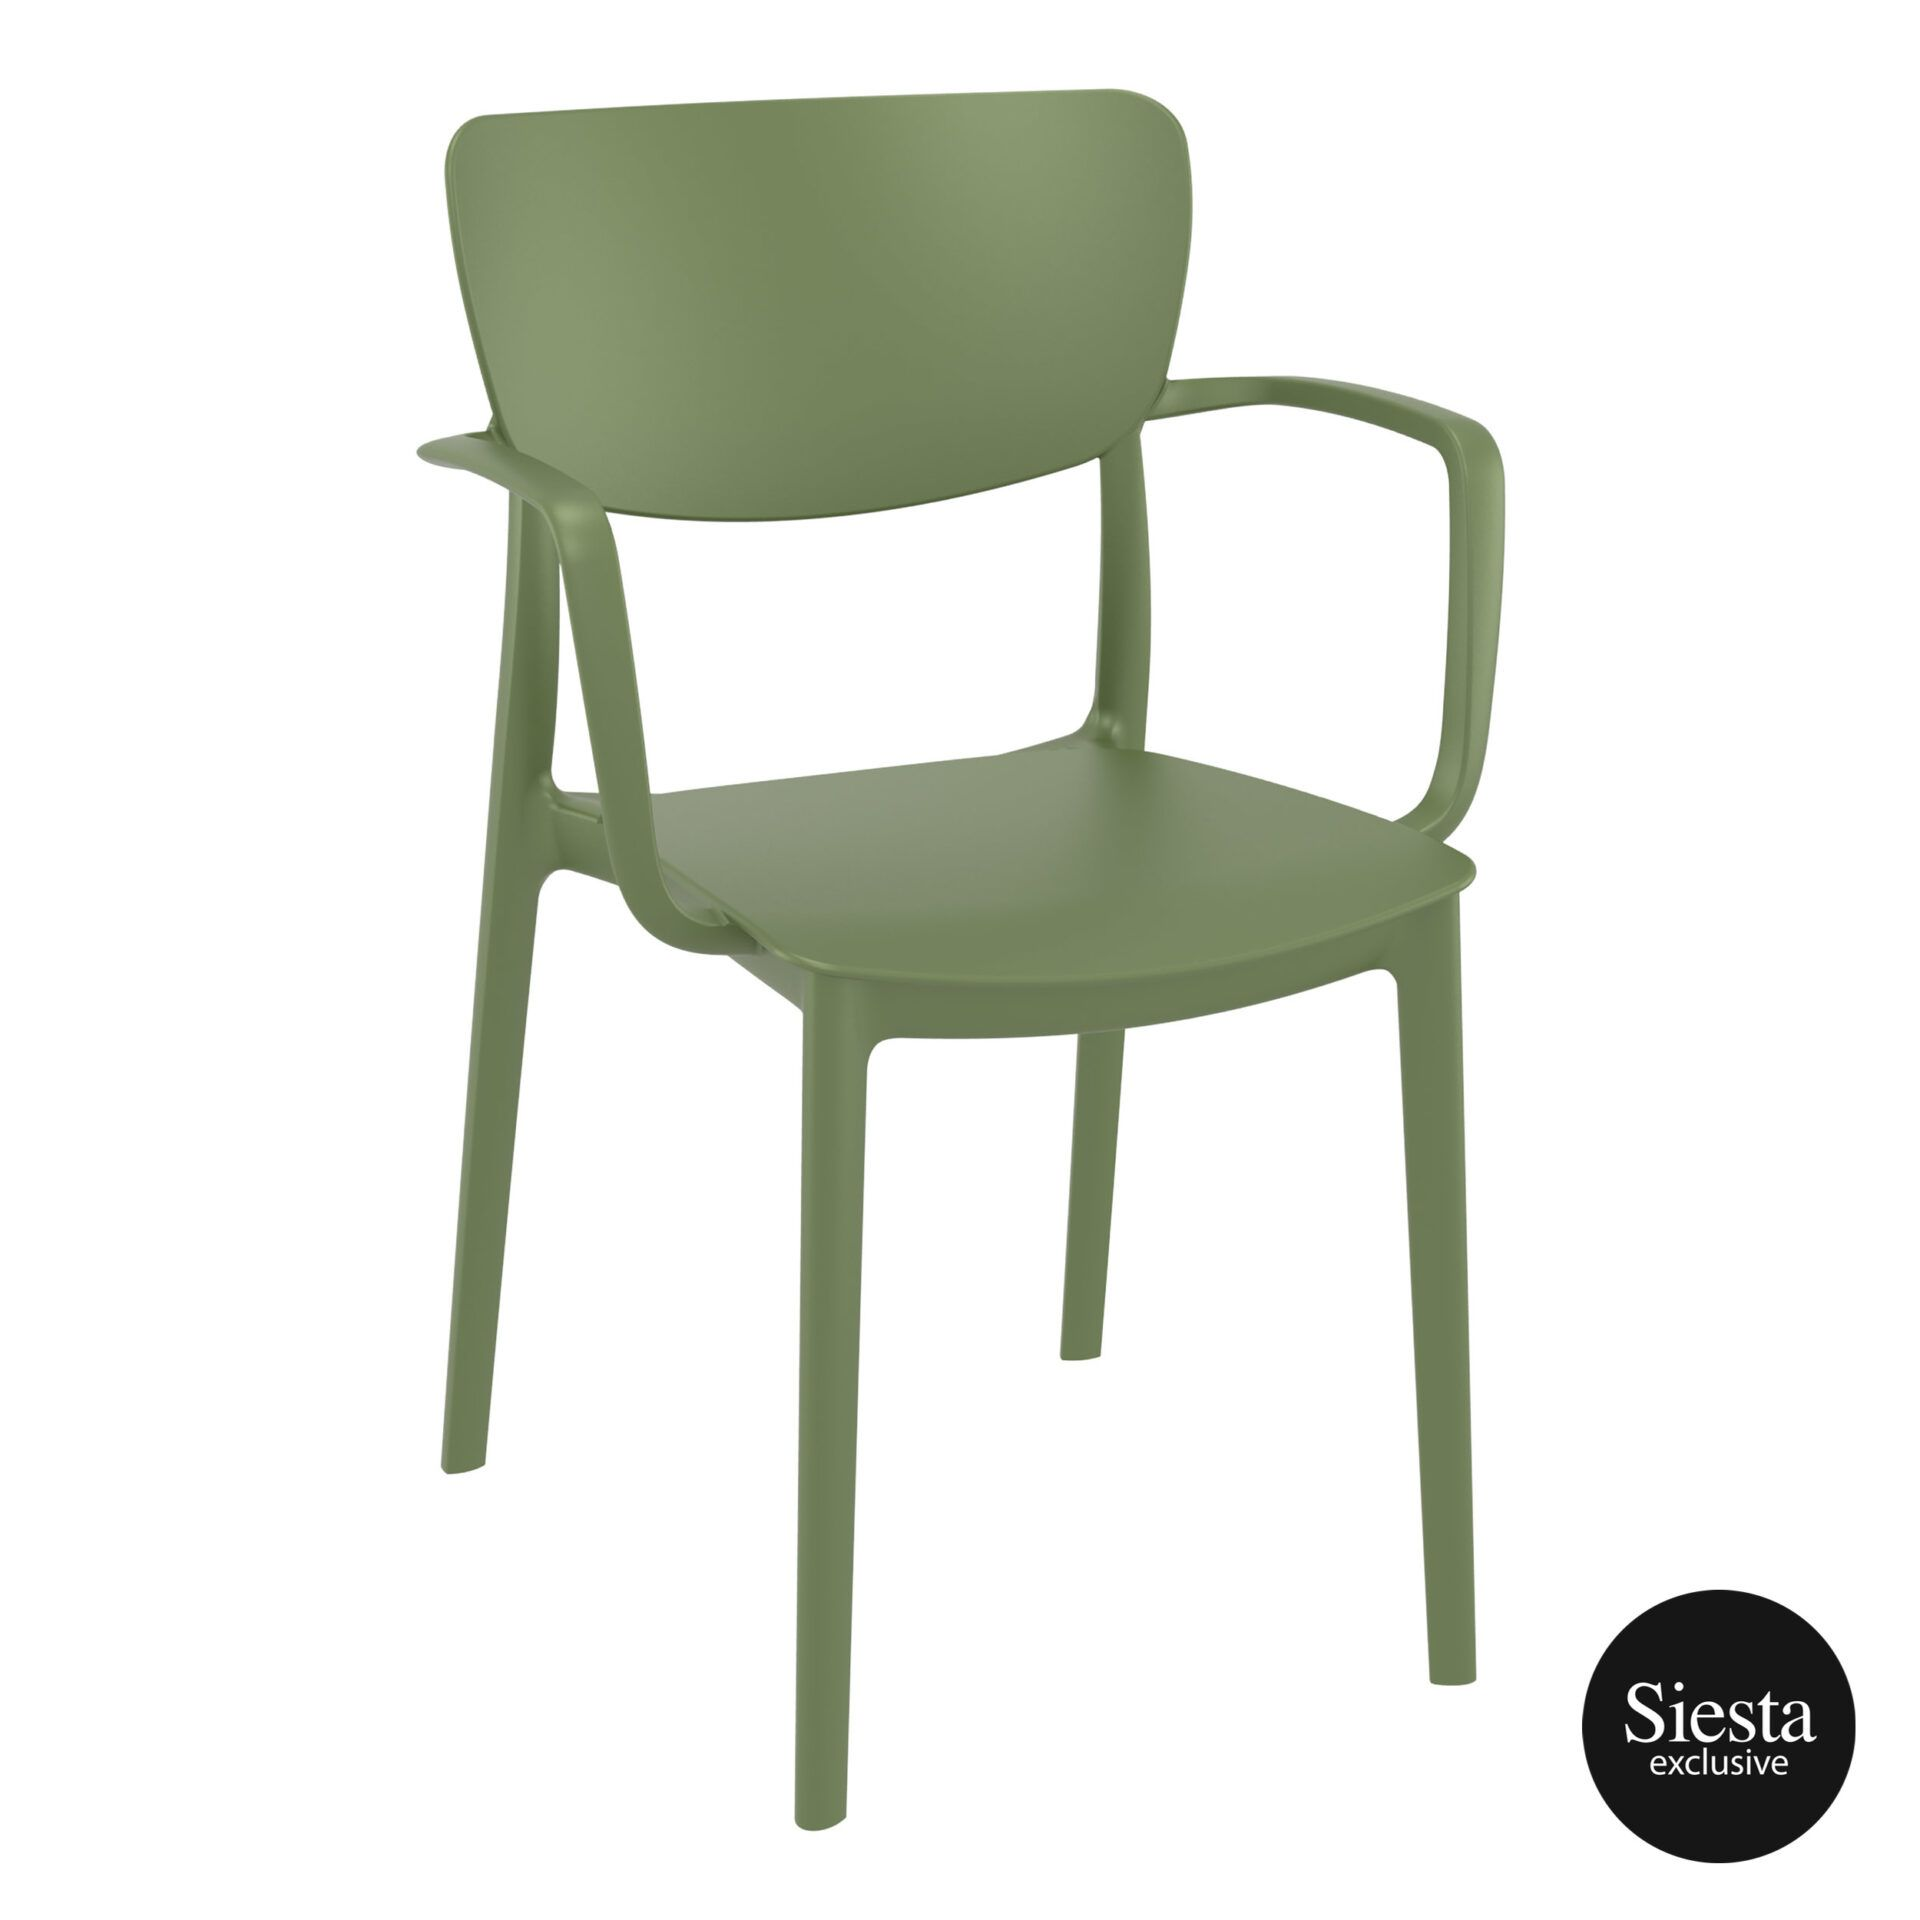 polypropylene hospitality seating lisa armchair olive green front side 1